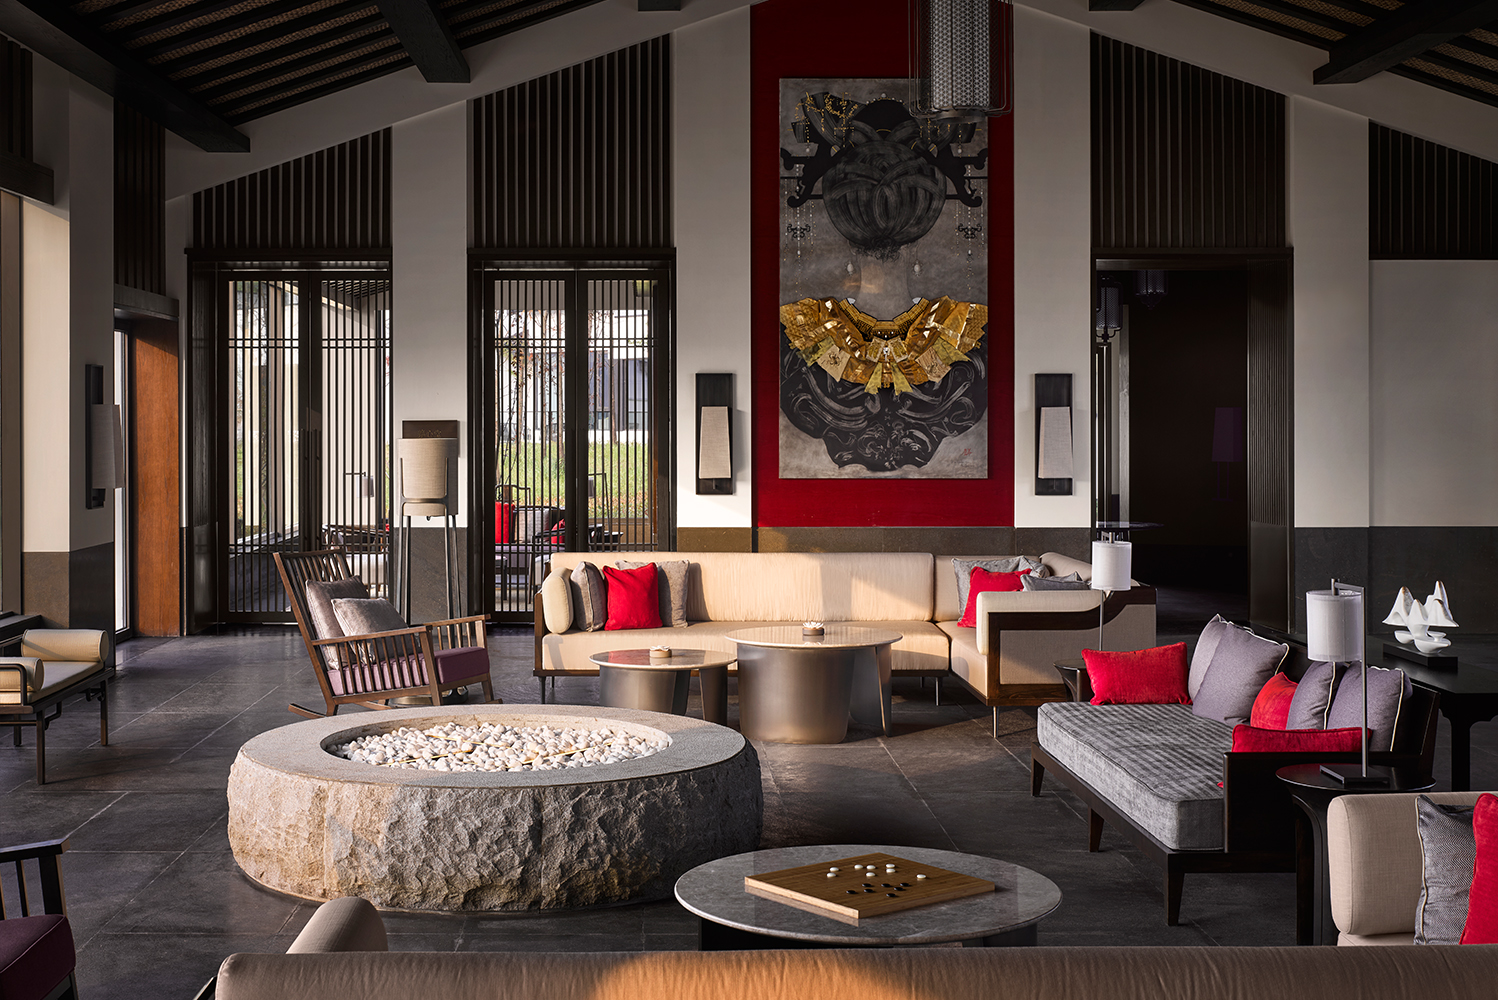 The villas were inspired by China's culture and craftsmanship.